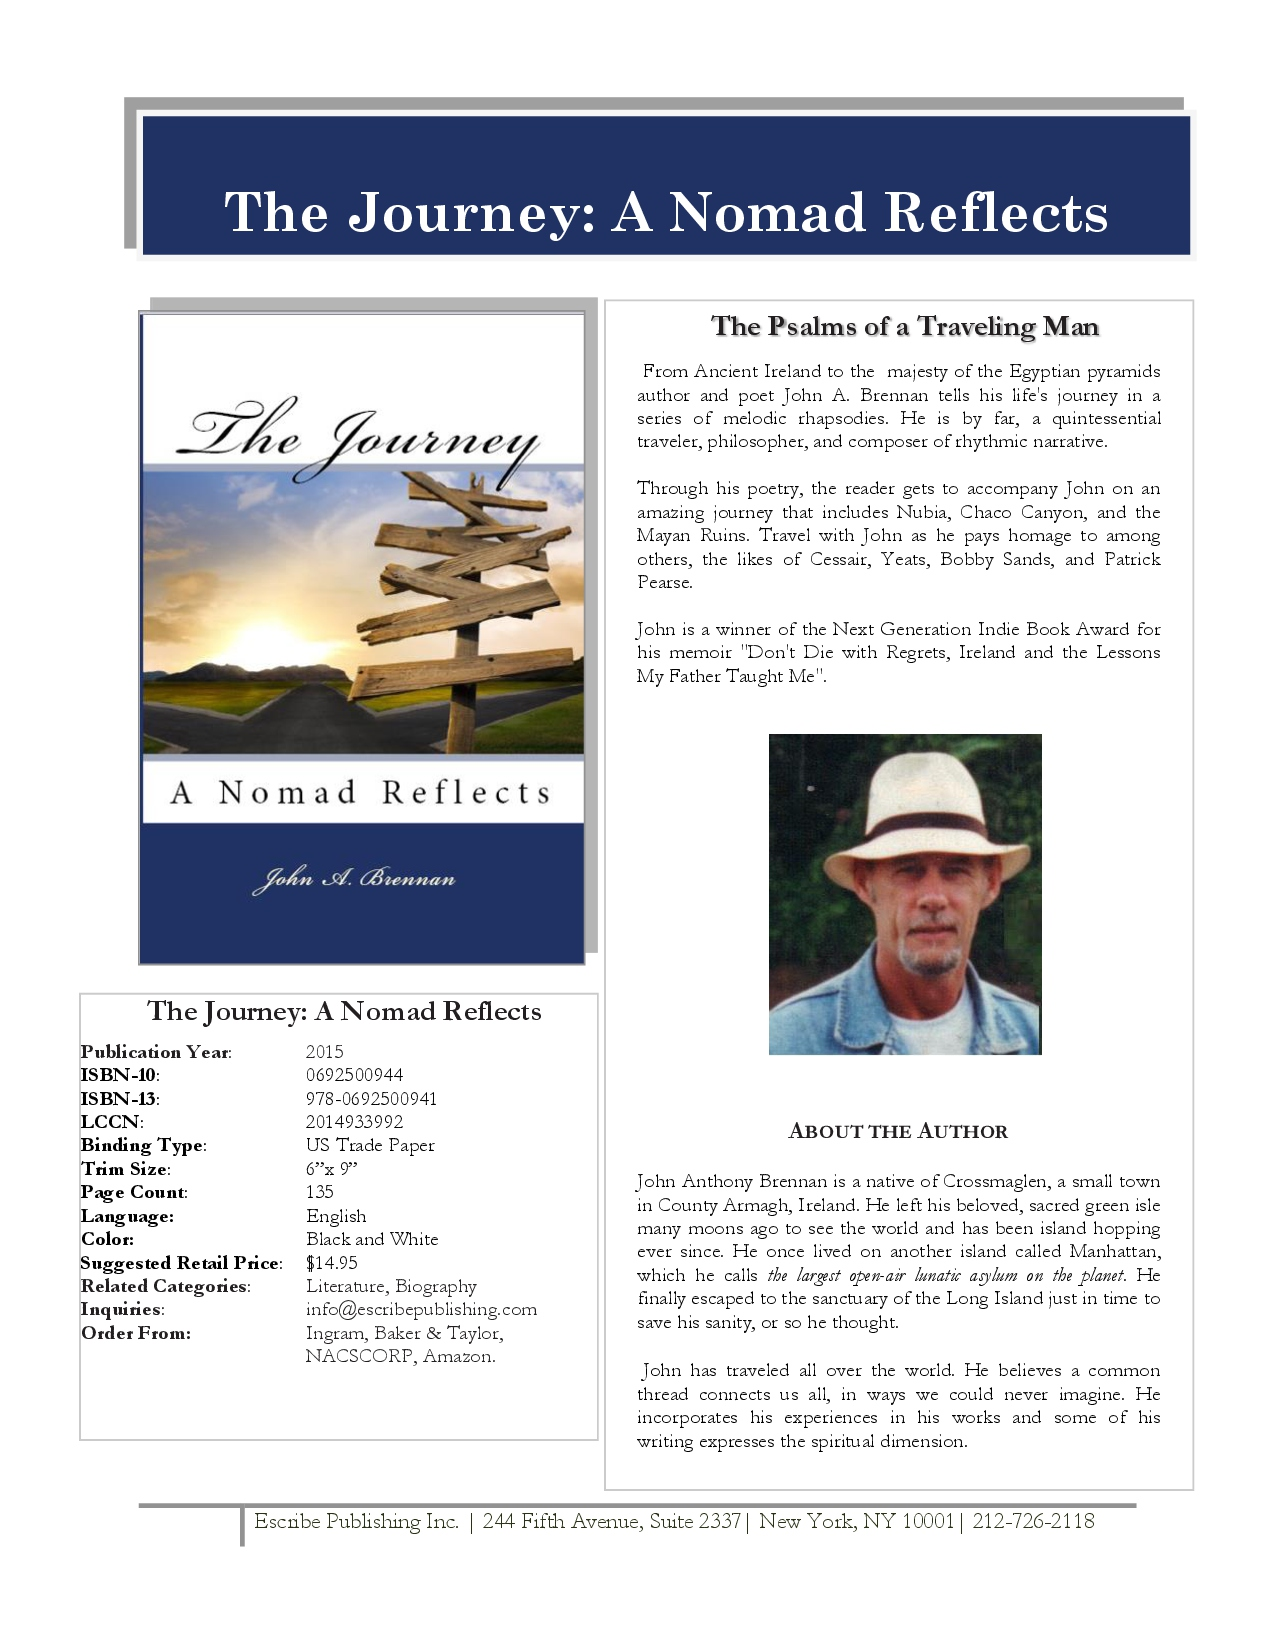 THE JOURNEY SELLSHEET